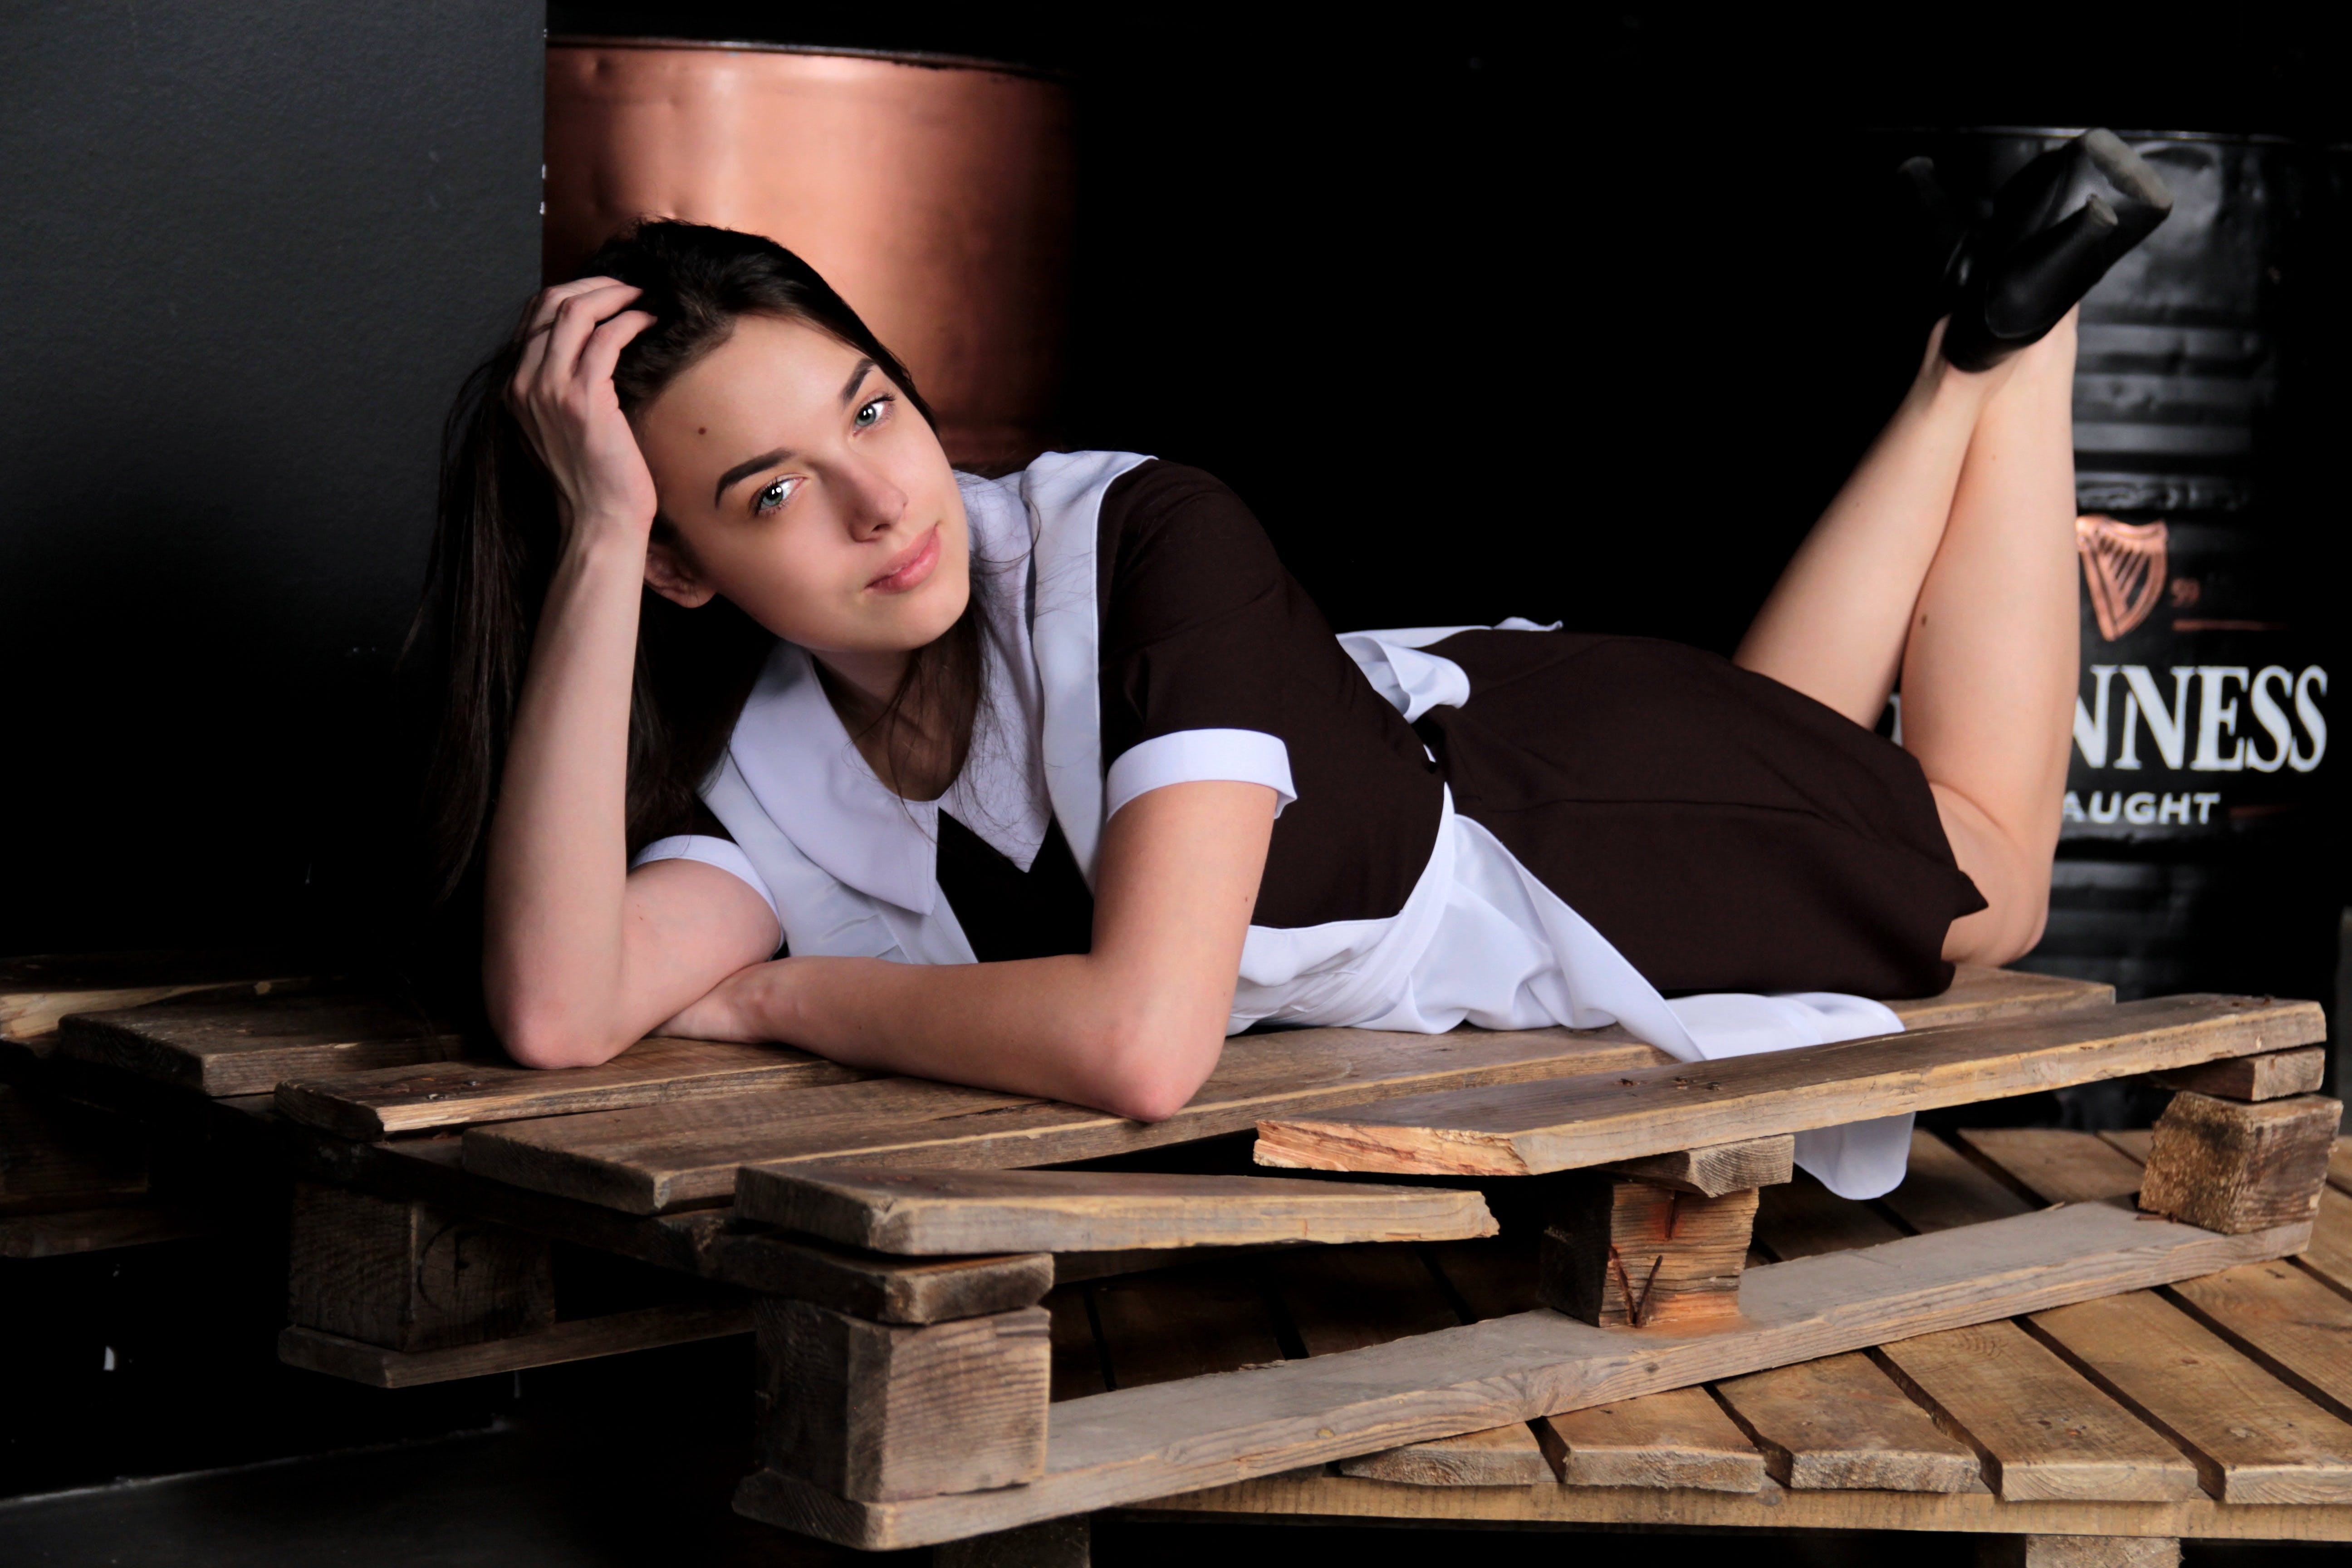 Woman in Maid Dress Lying on Pallet